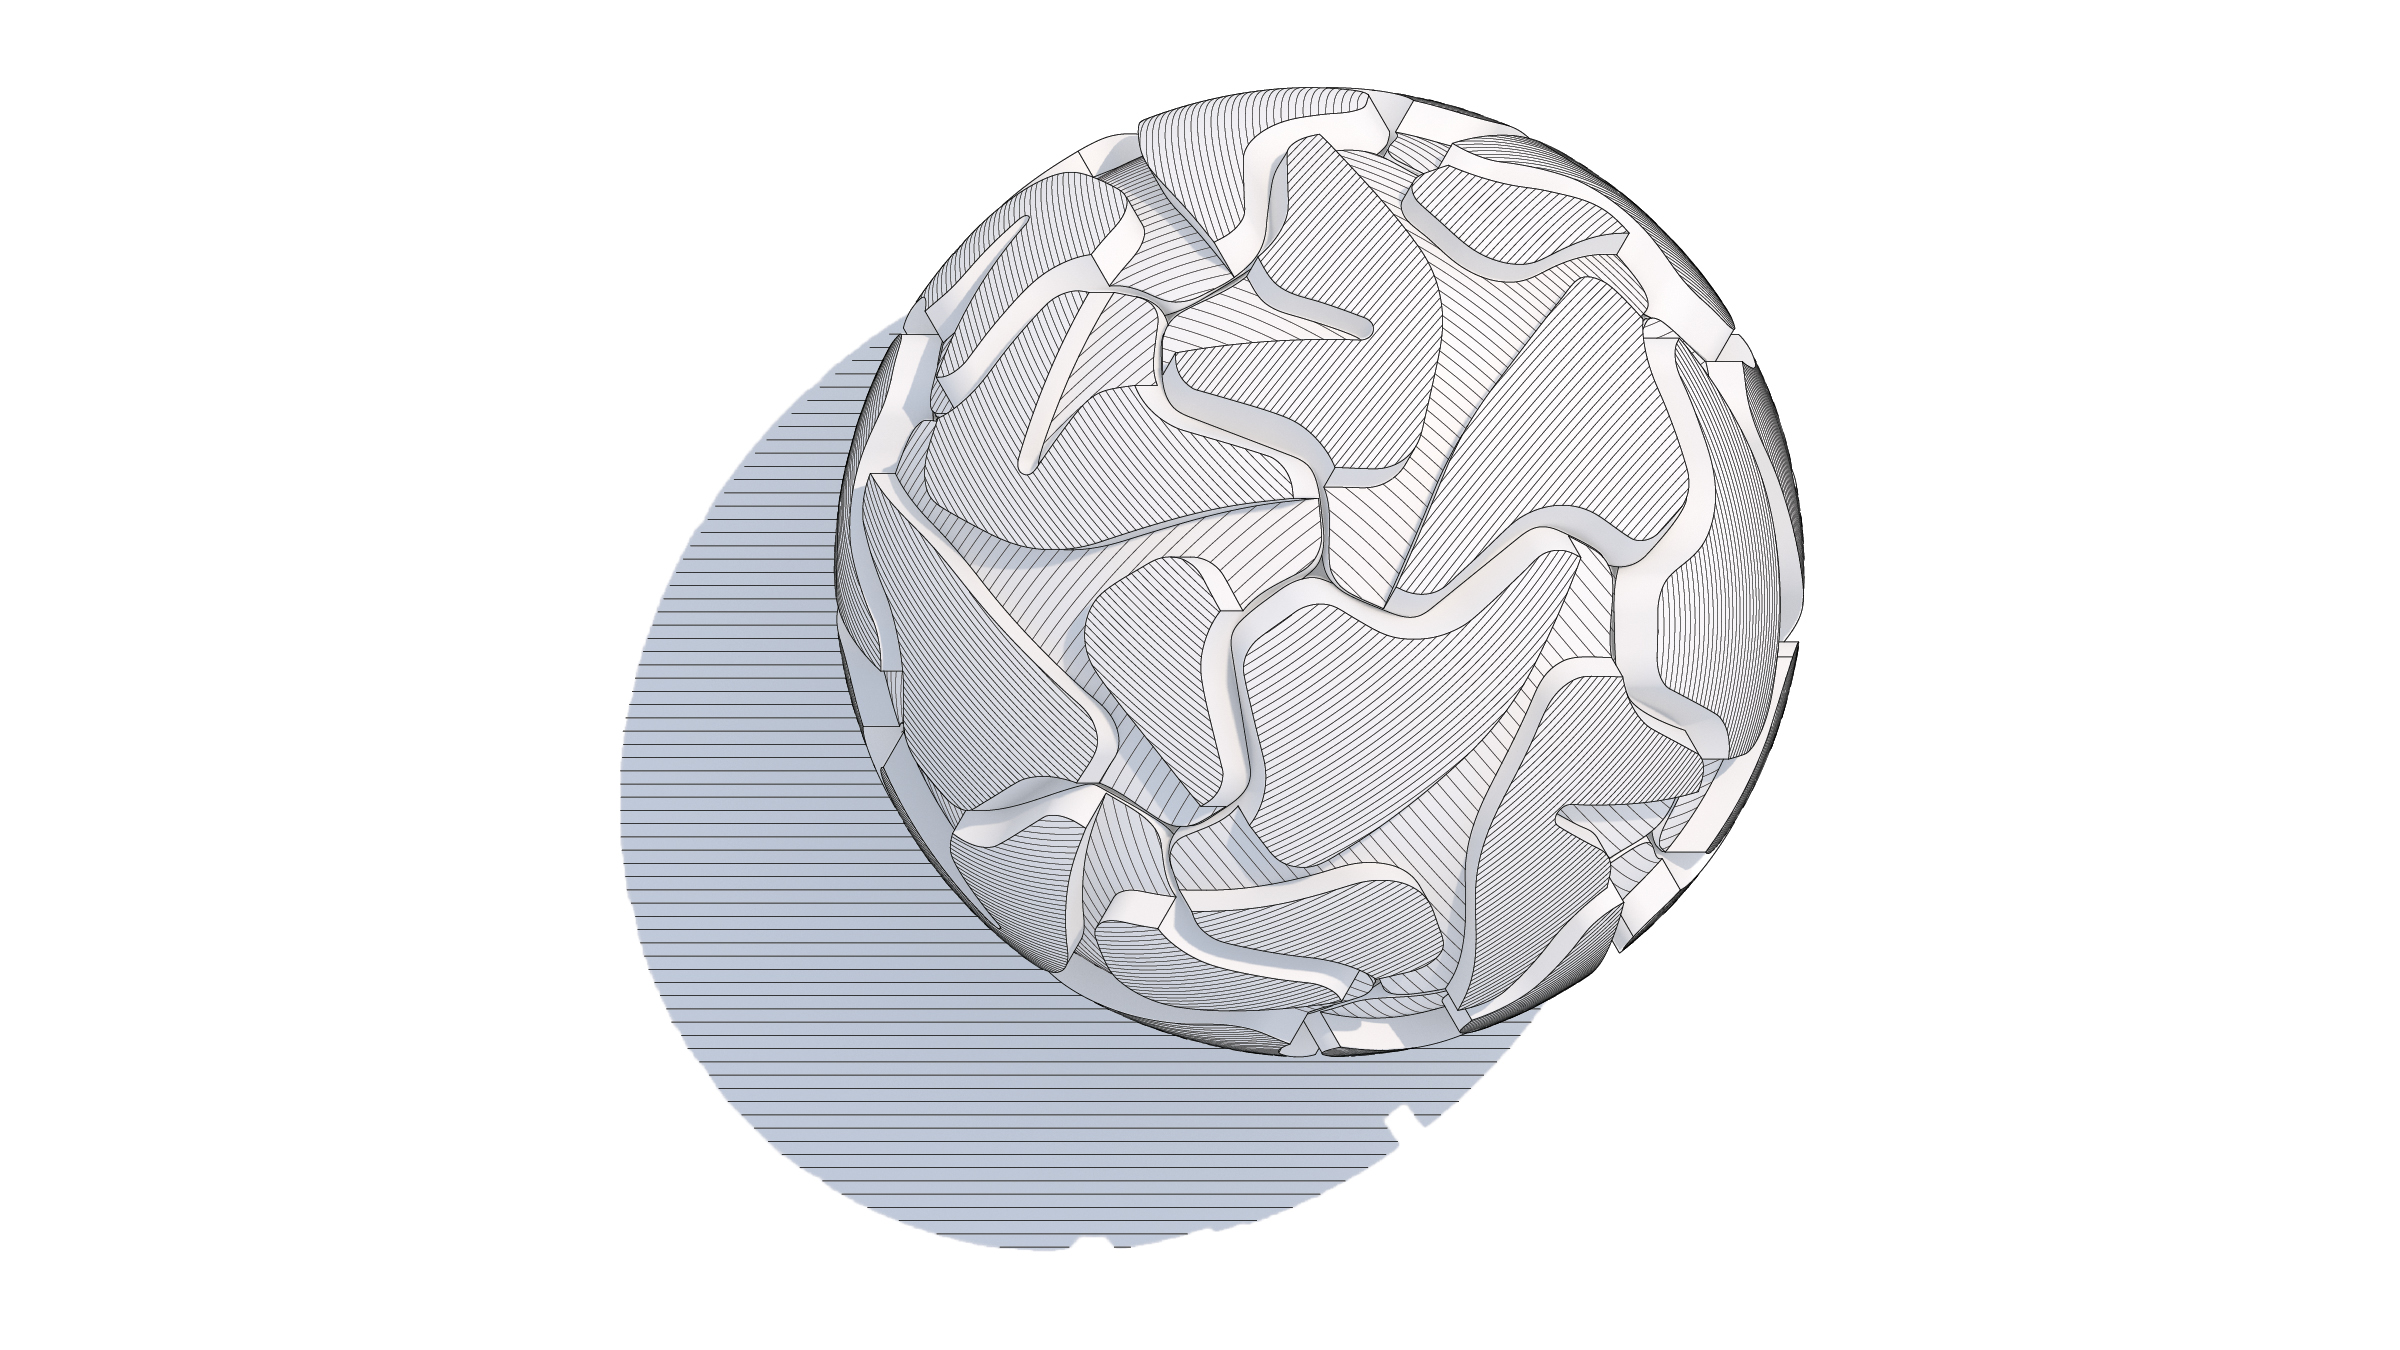 sphere with nested figures images7.jpg